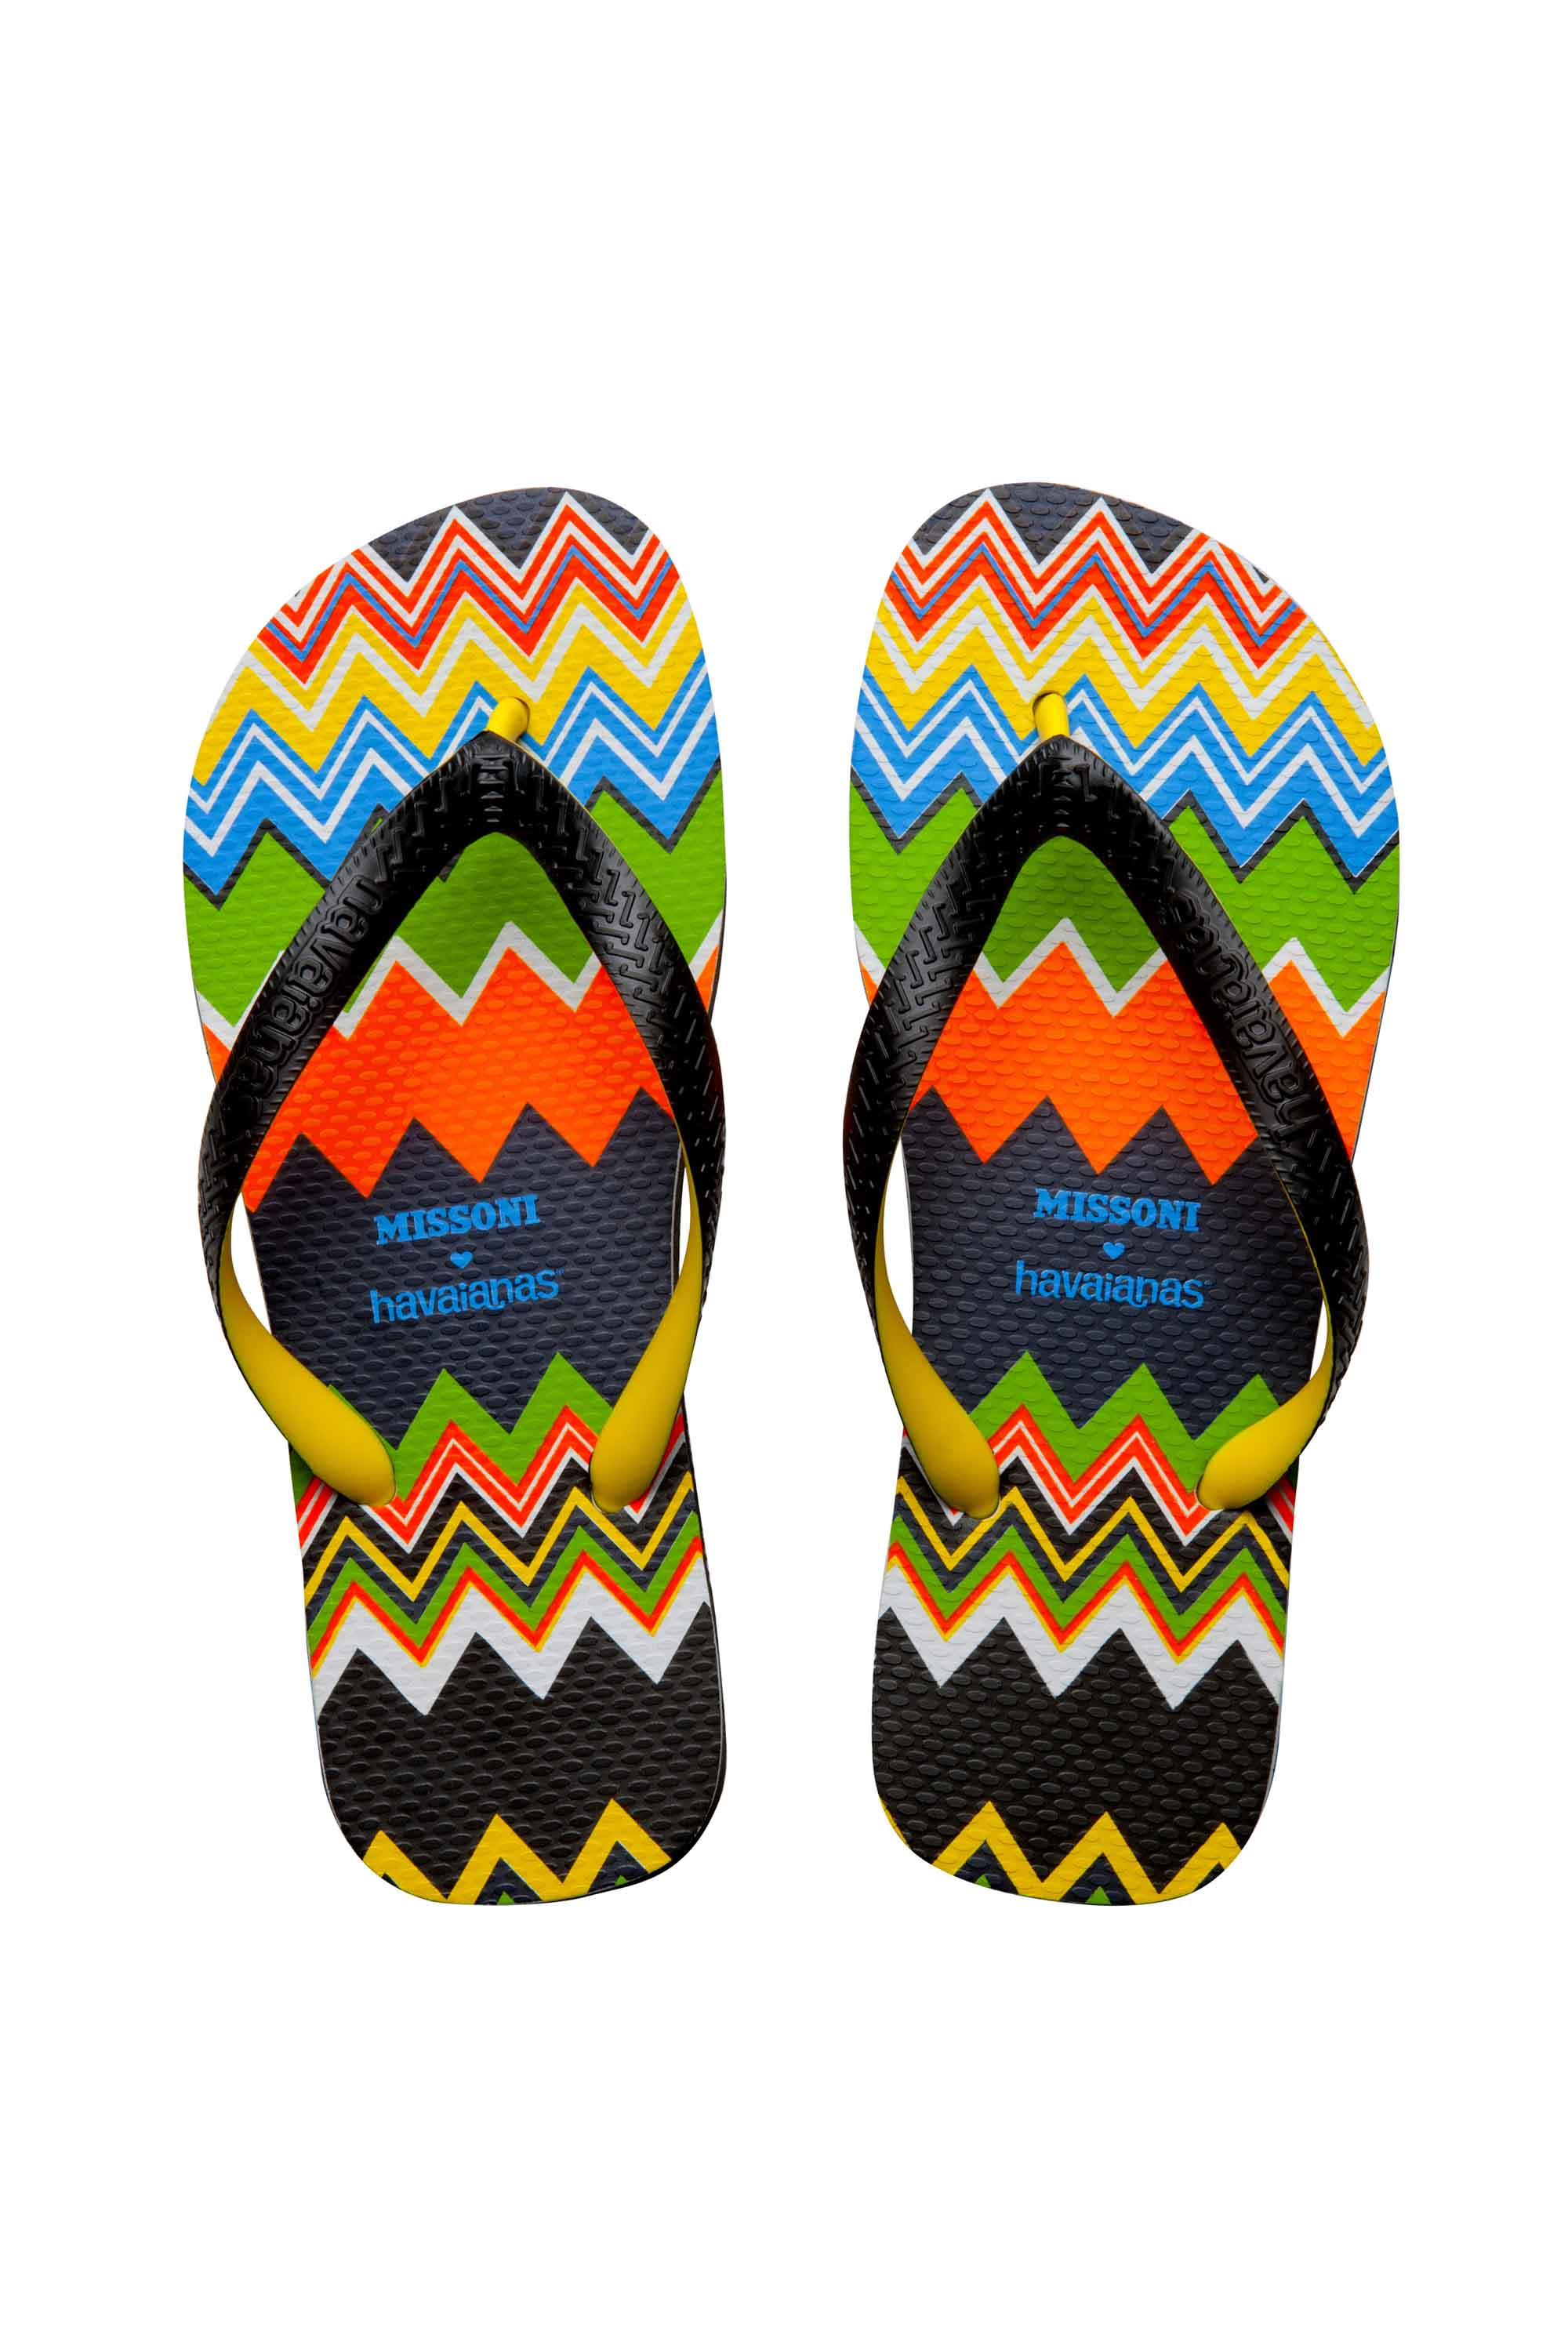 1d69e68ca93e37 The italian brand Missoni got together with Havaianas to create some  stylish flip-flops and espadrilles.